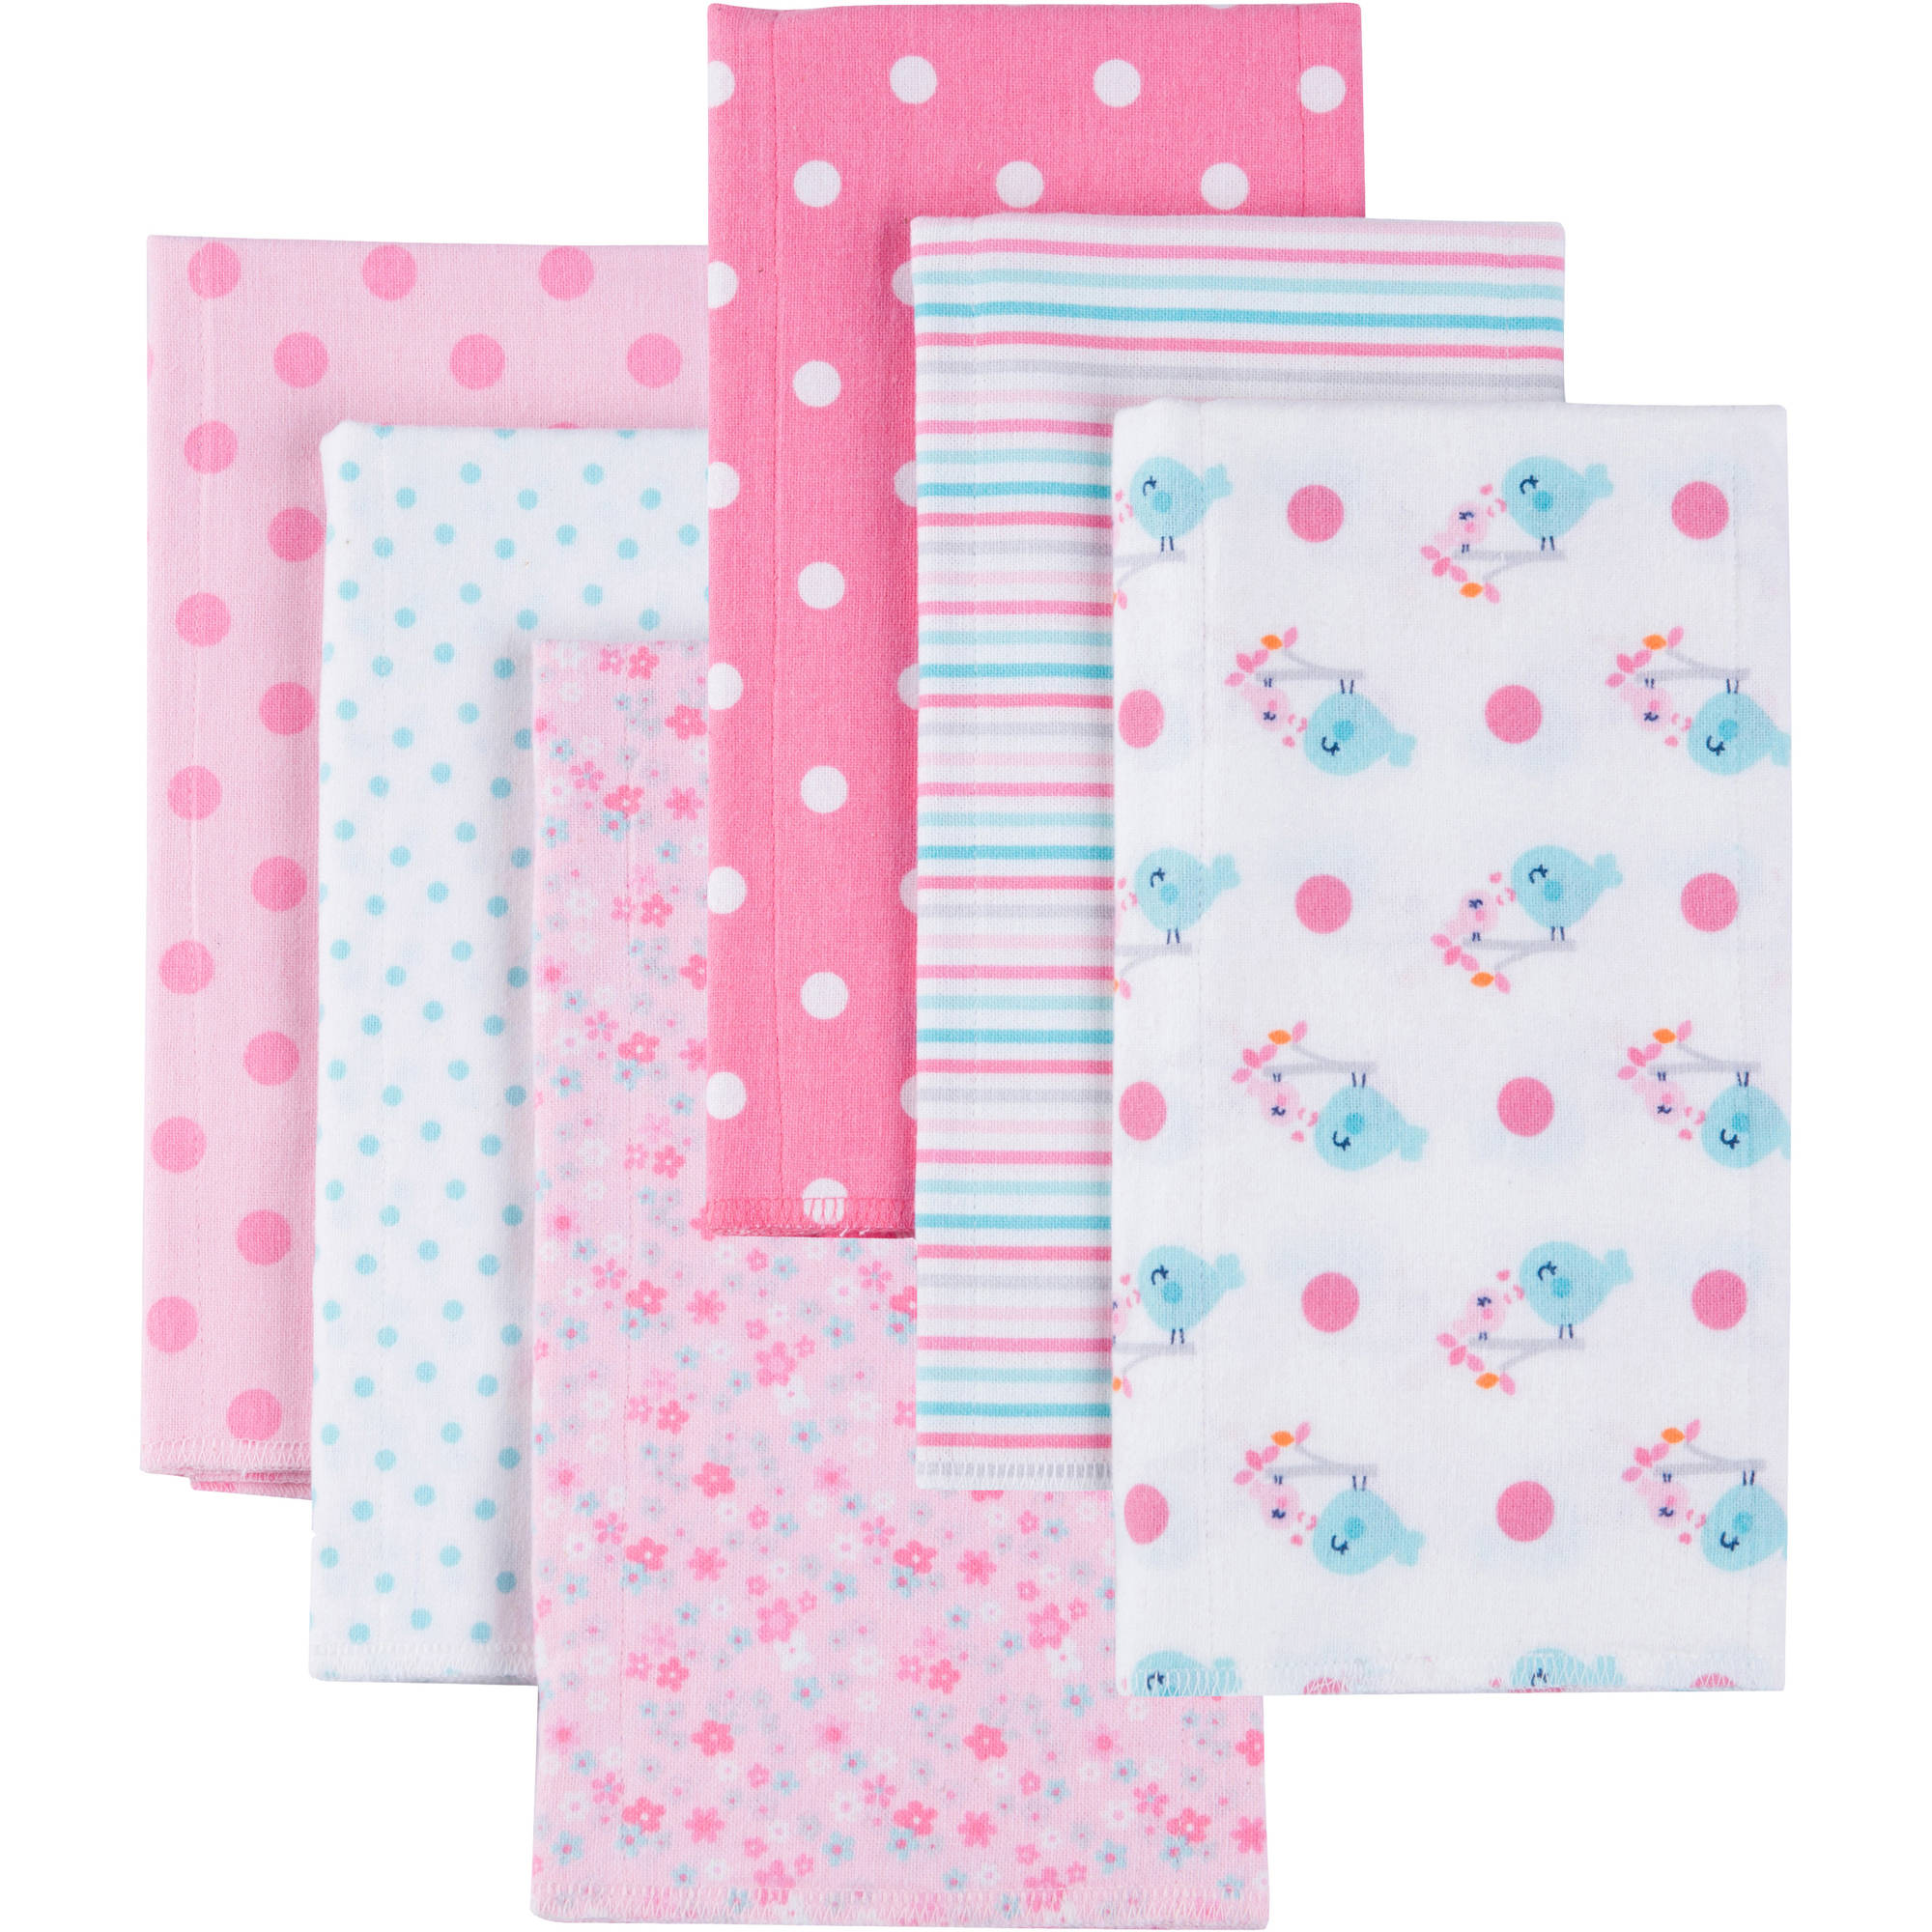 Gerber Baby Girl Flannel Burp Cloths, 6-Pack